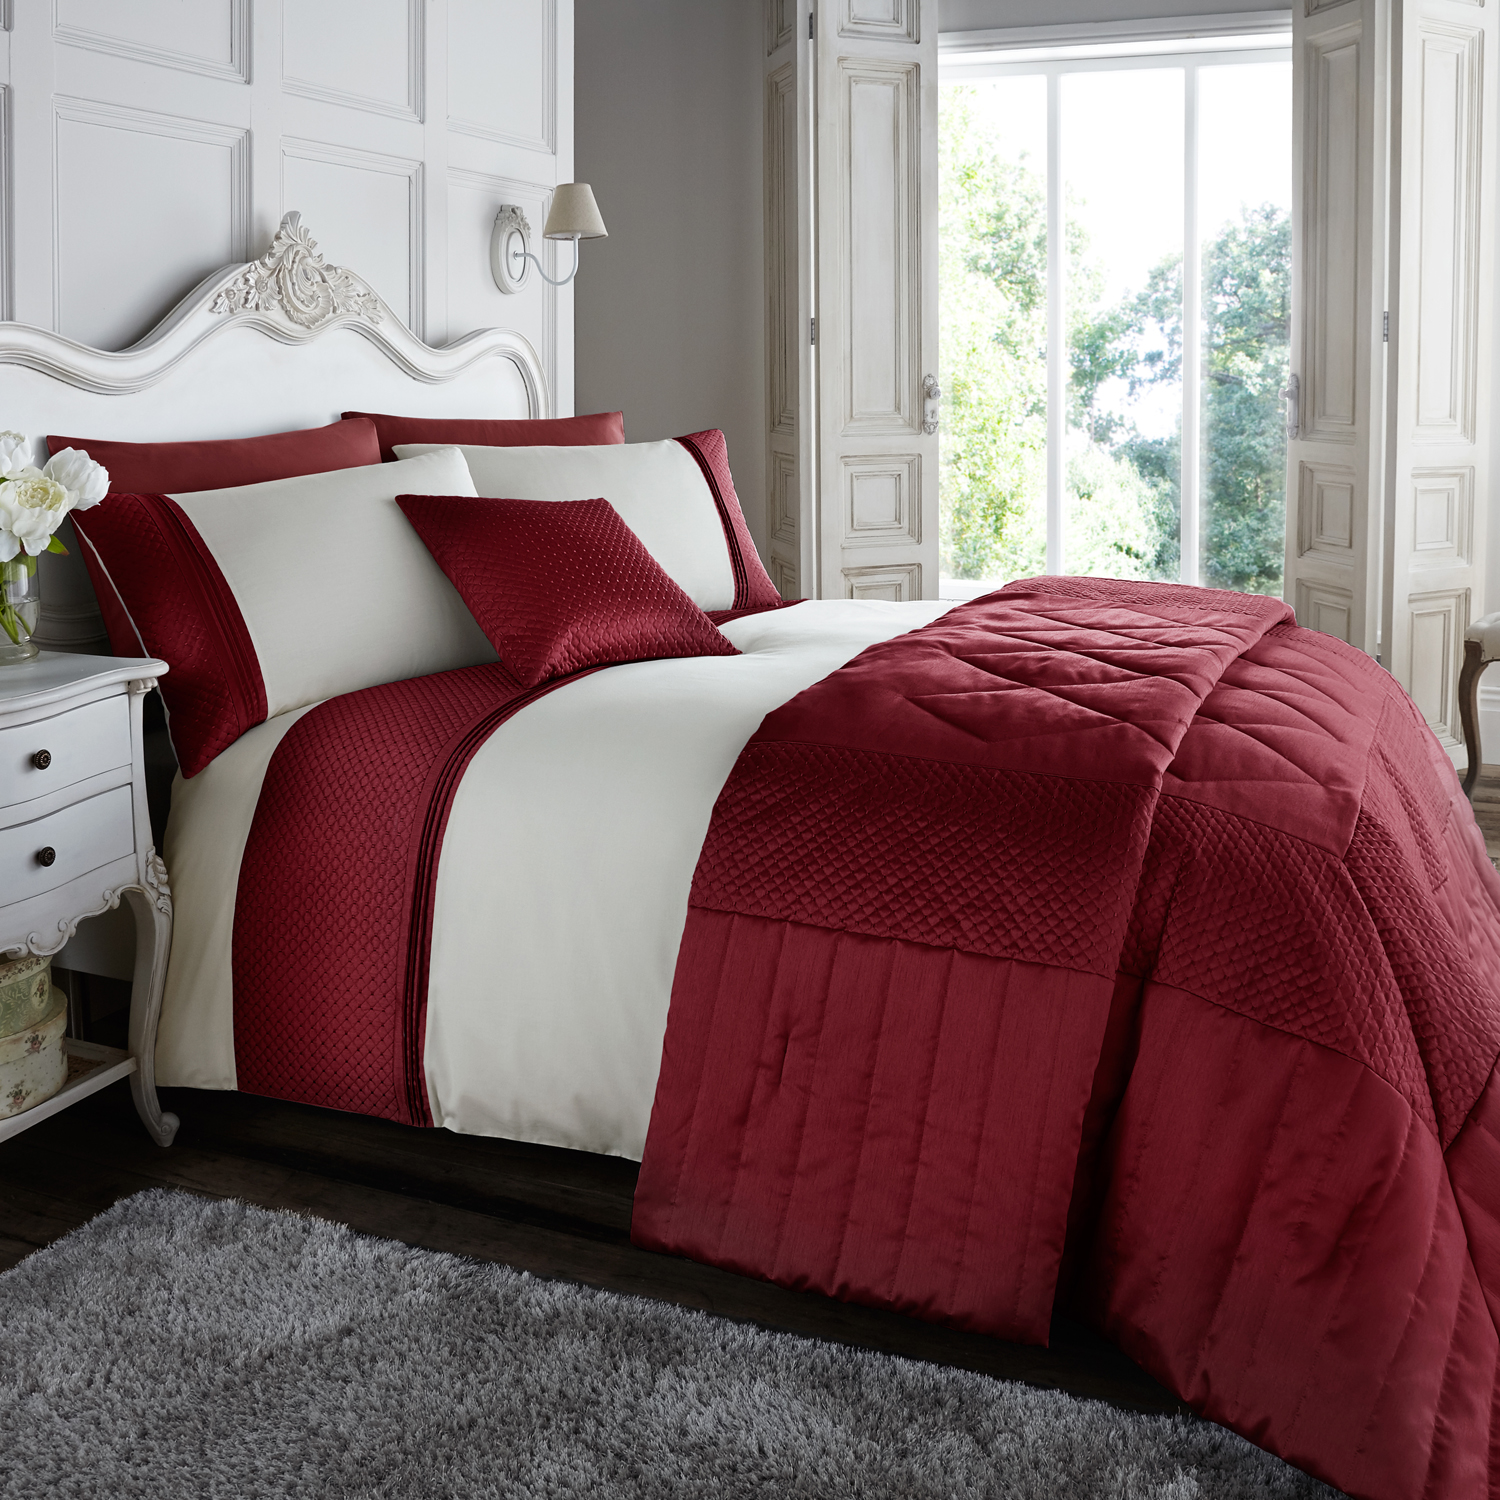 set range red product quilt cover printed paisley duvet bedding linens